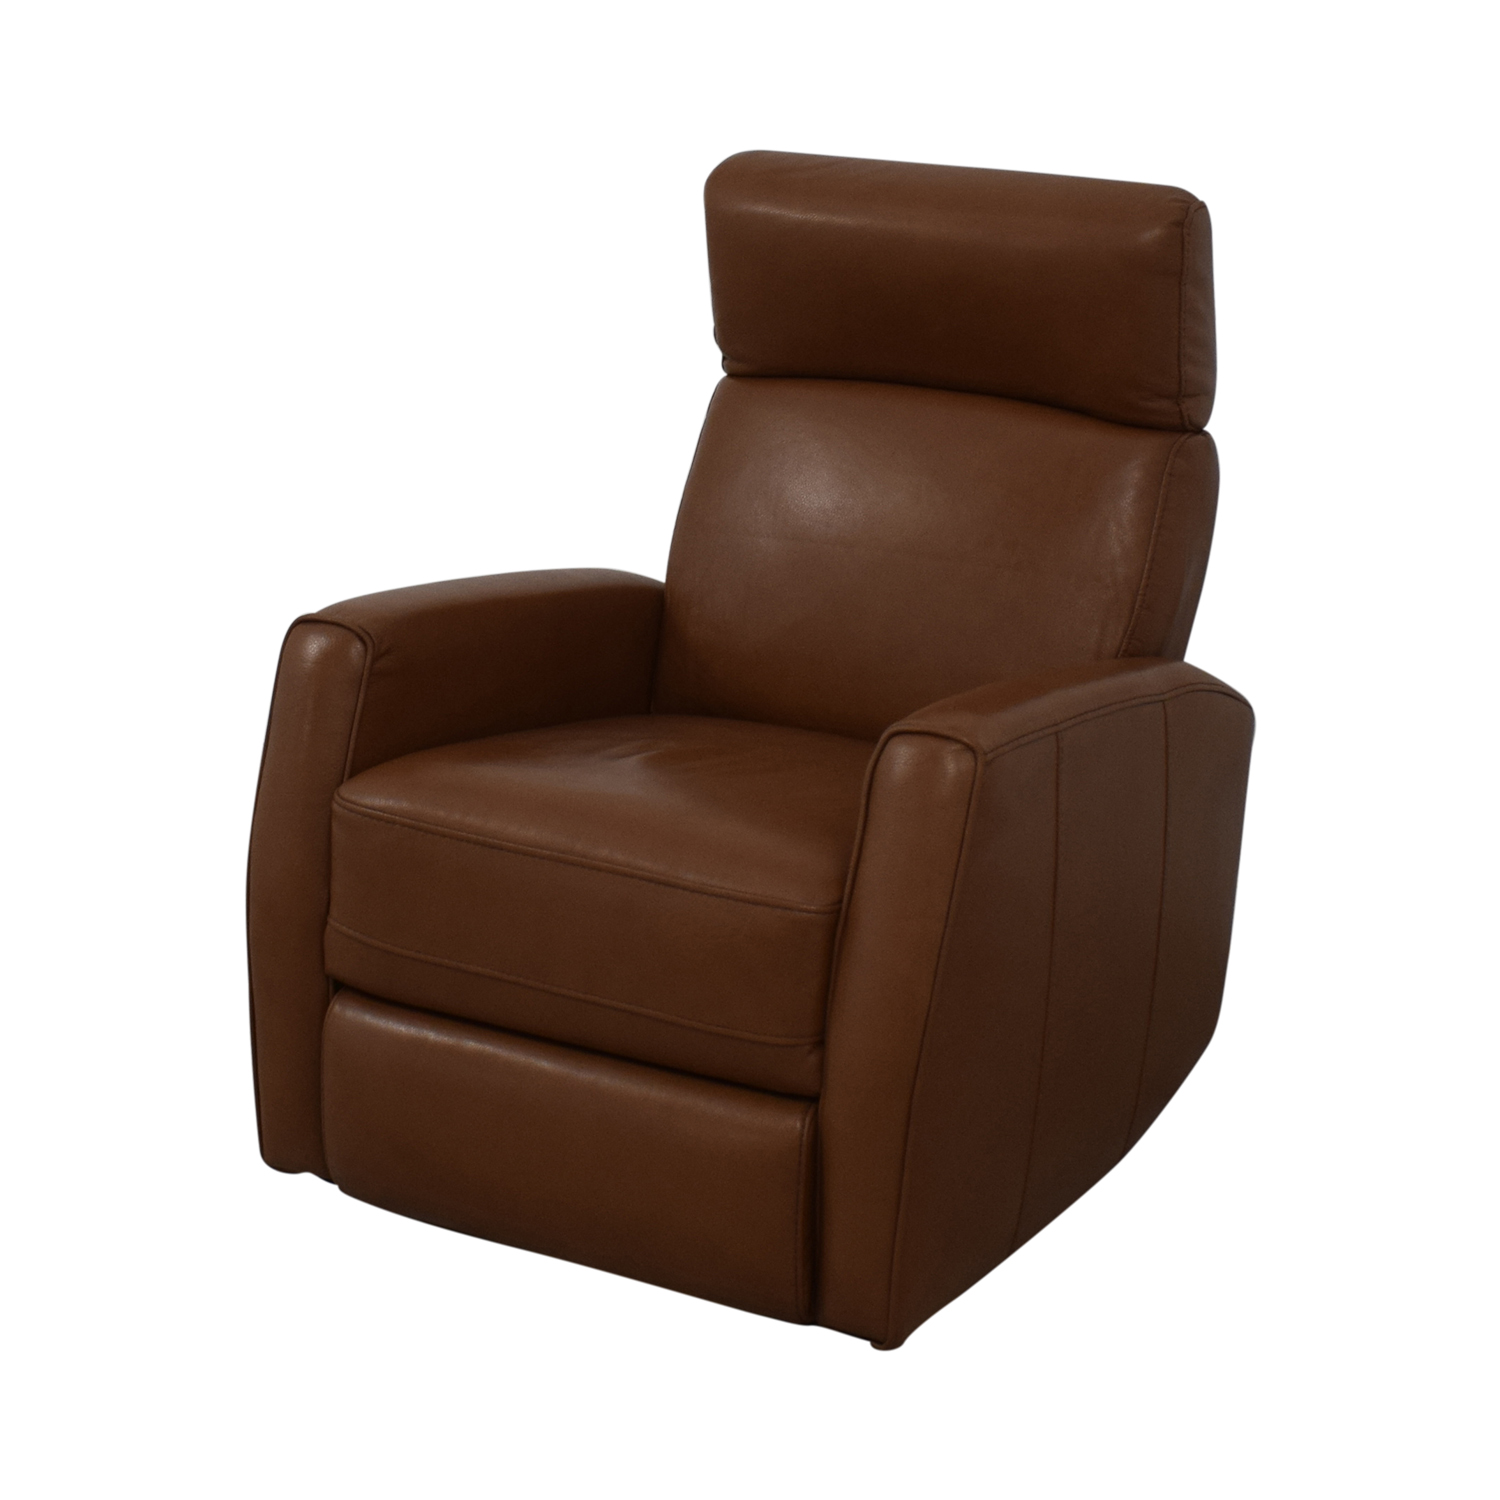 Macy's Macy's Power Reclining Armchair second hand